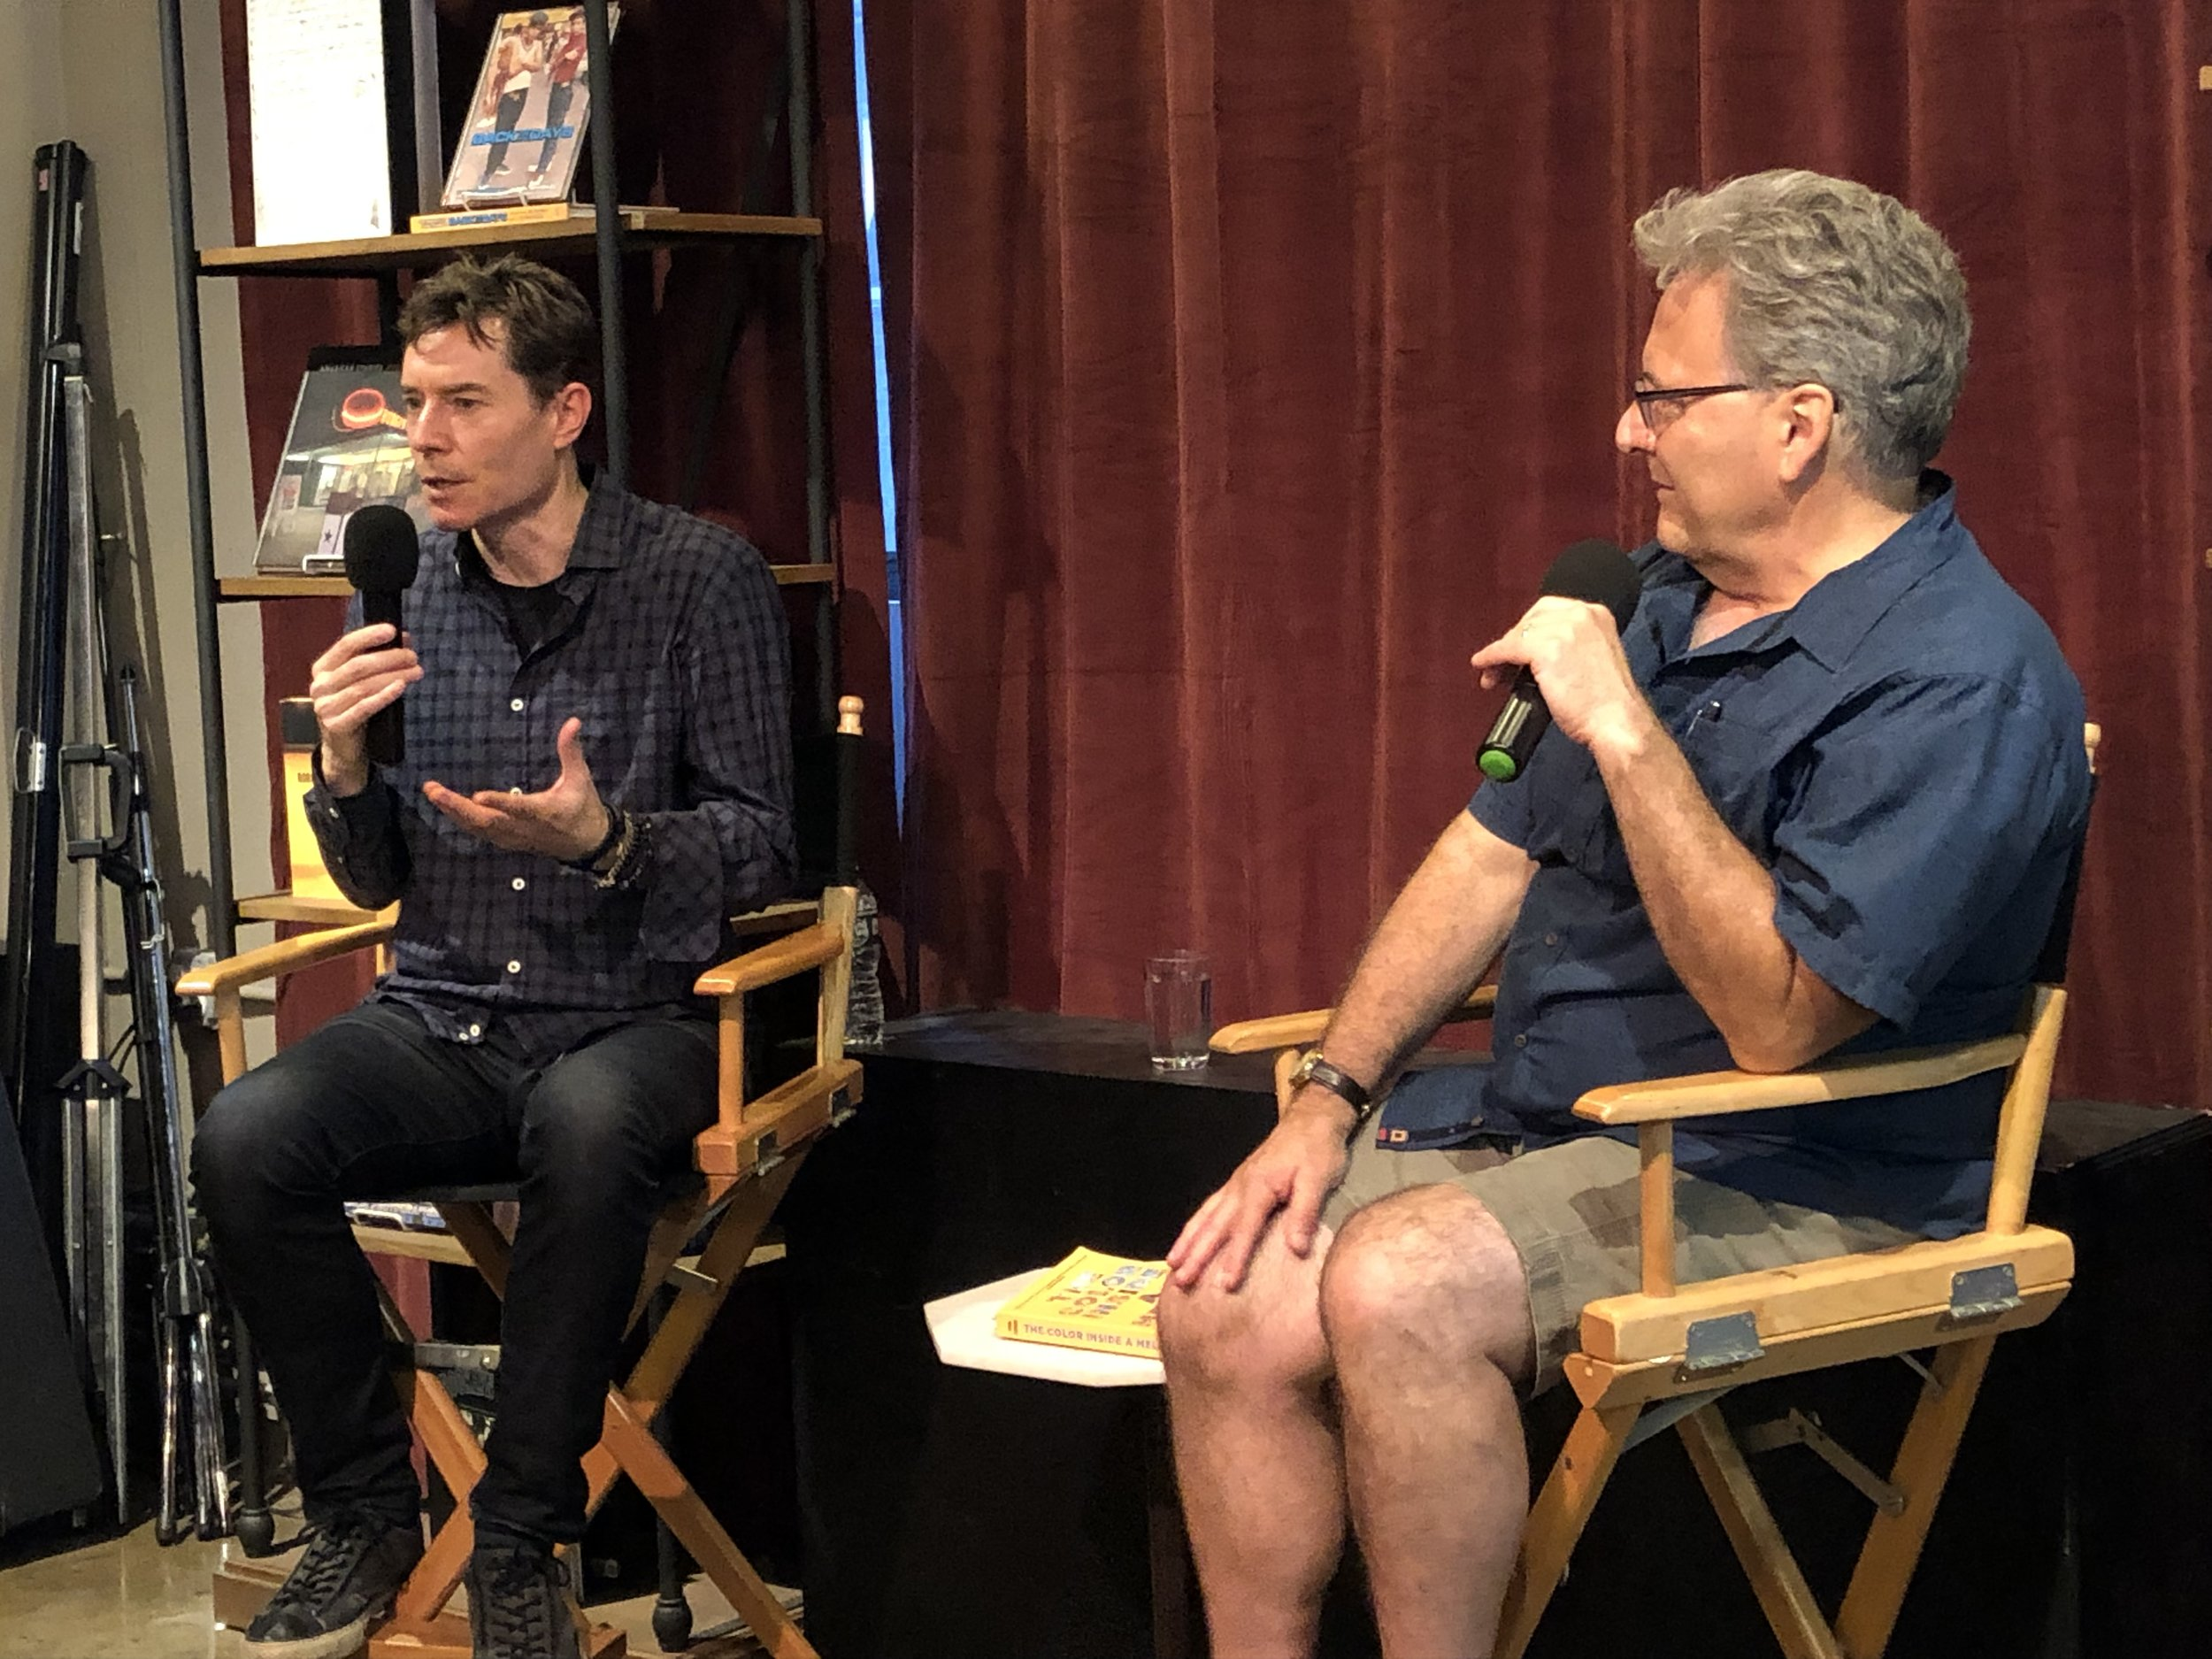 Christopher talks with author John Domini at the Powerhouse Arena bookstore, Brooklyn, July 2019